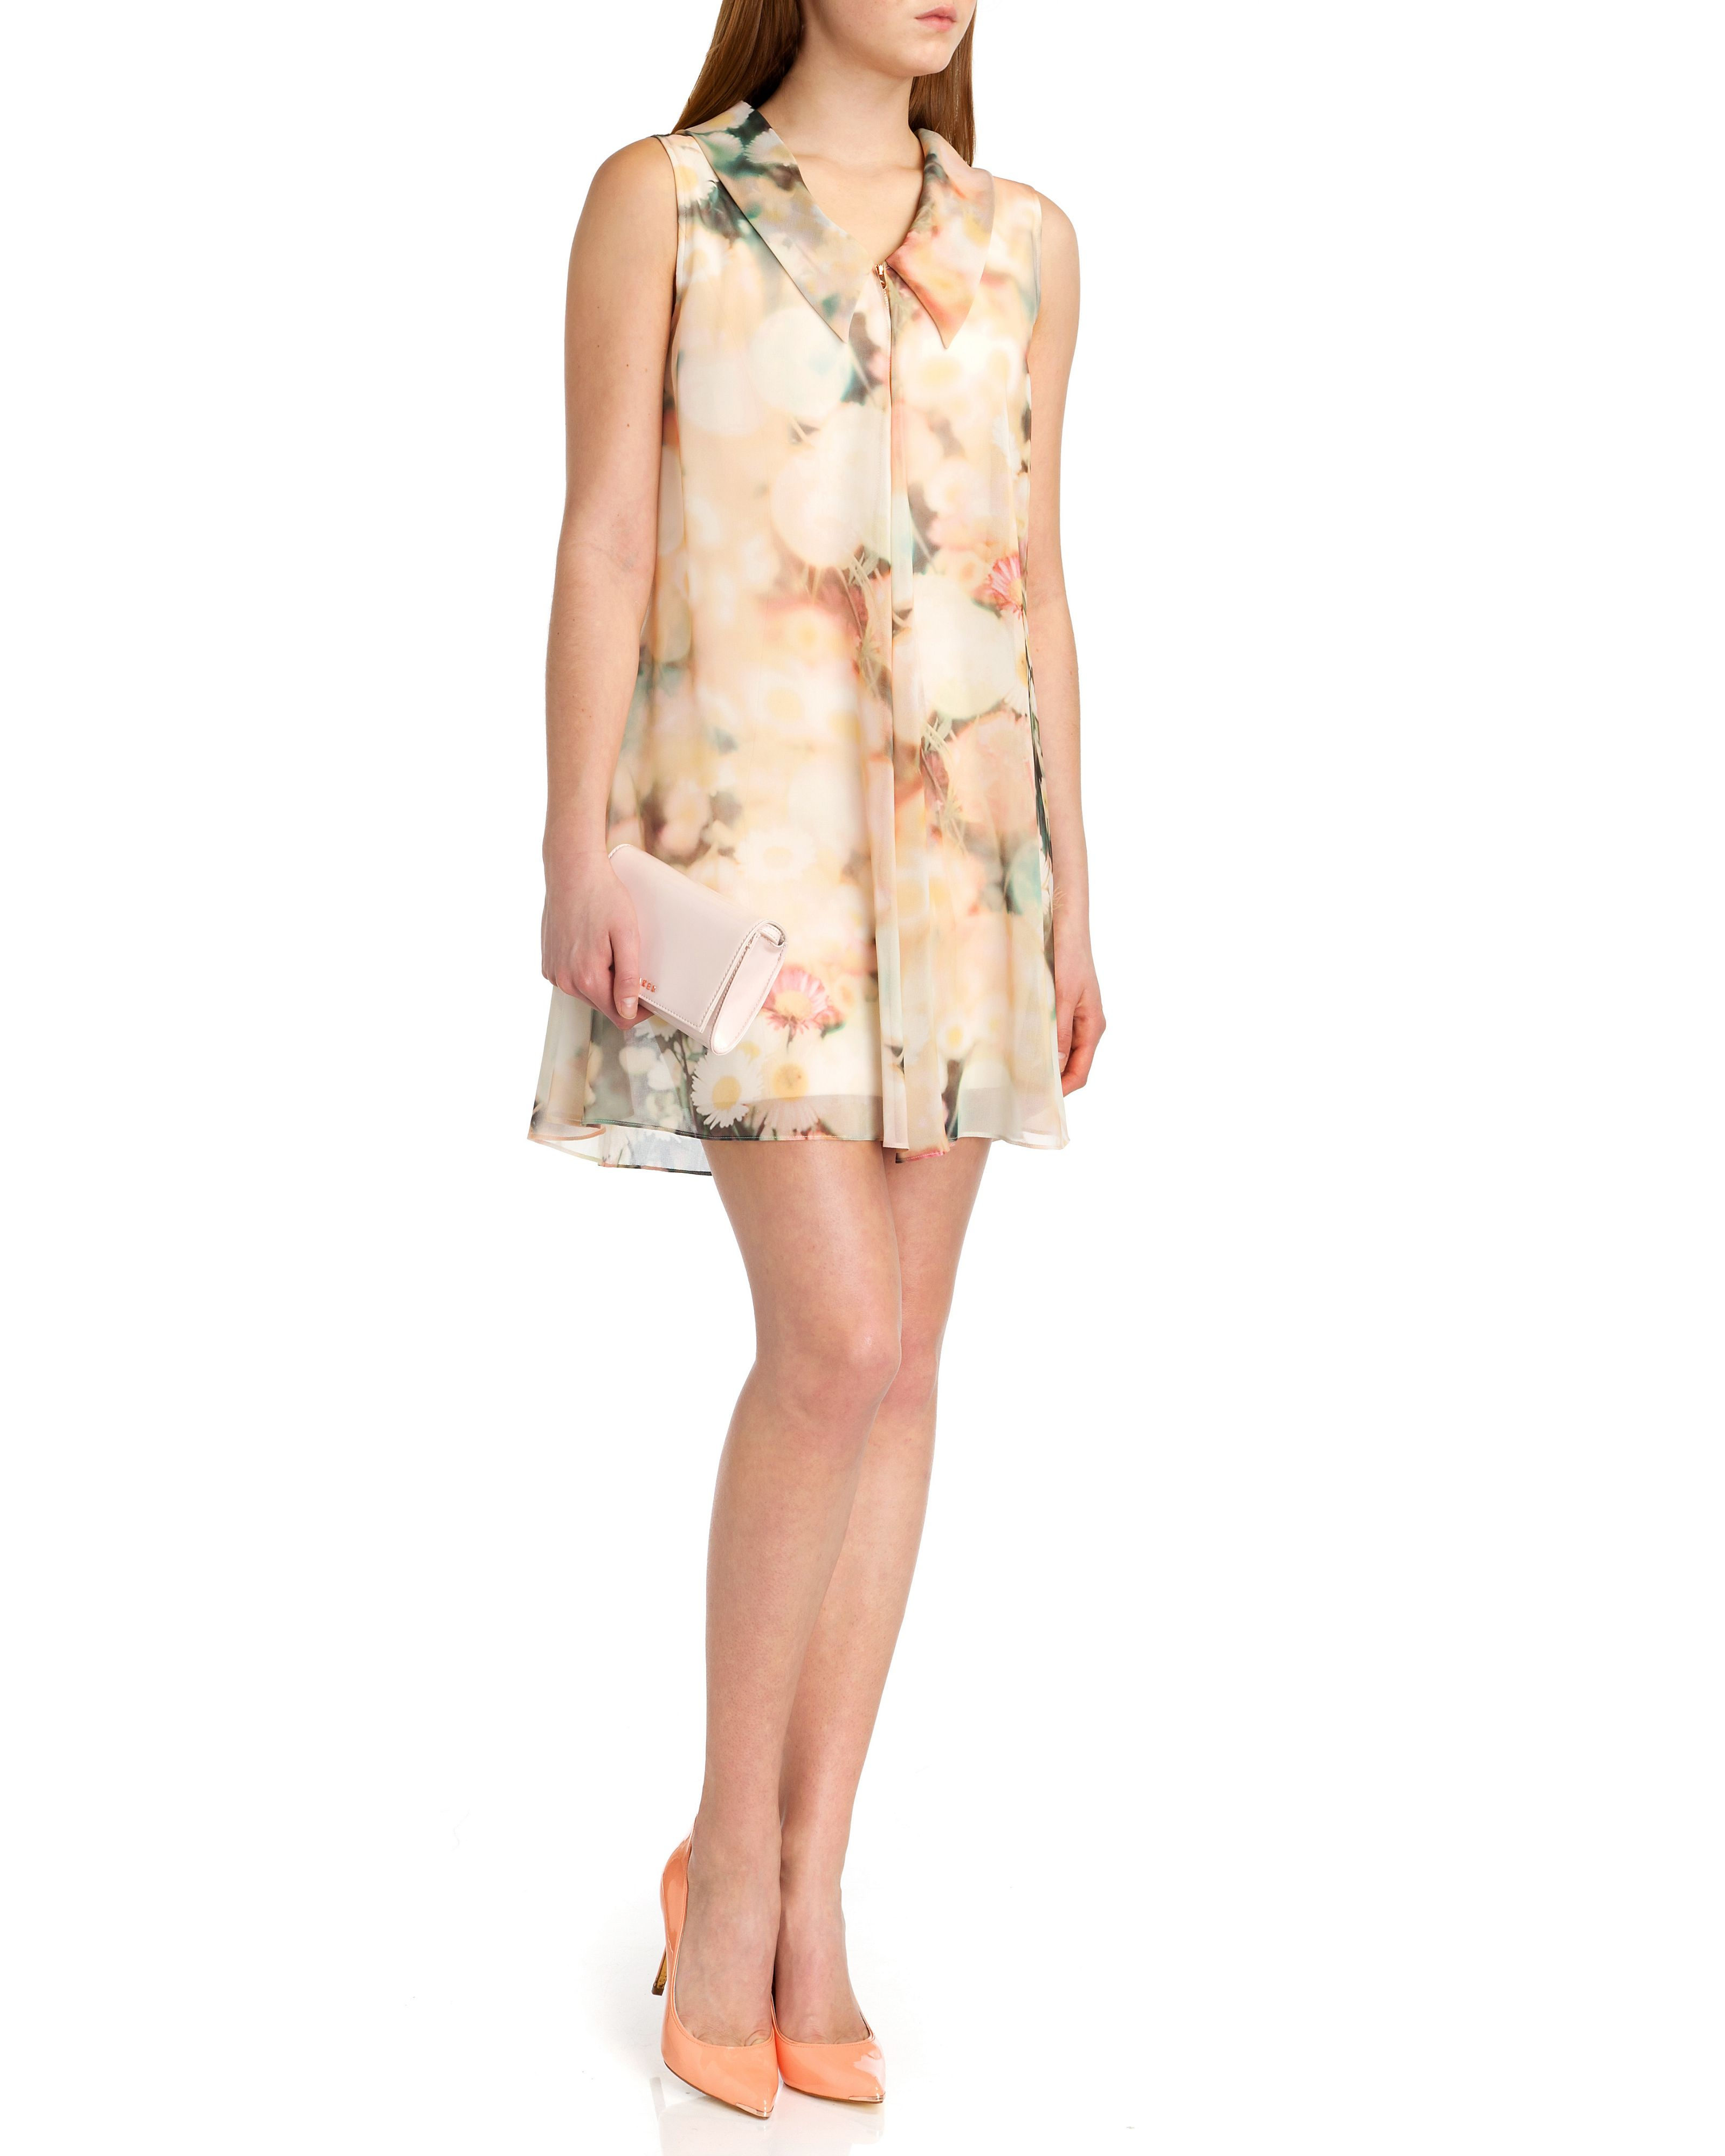 Nalow daisy print tunic dress